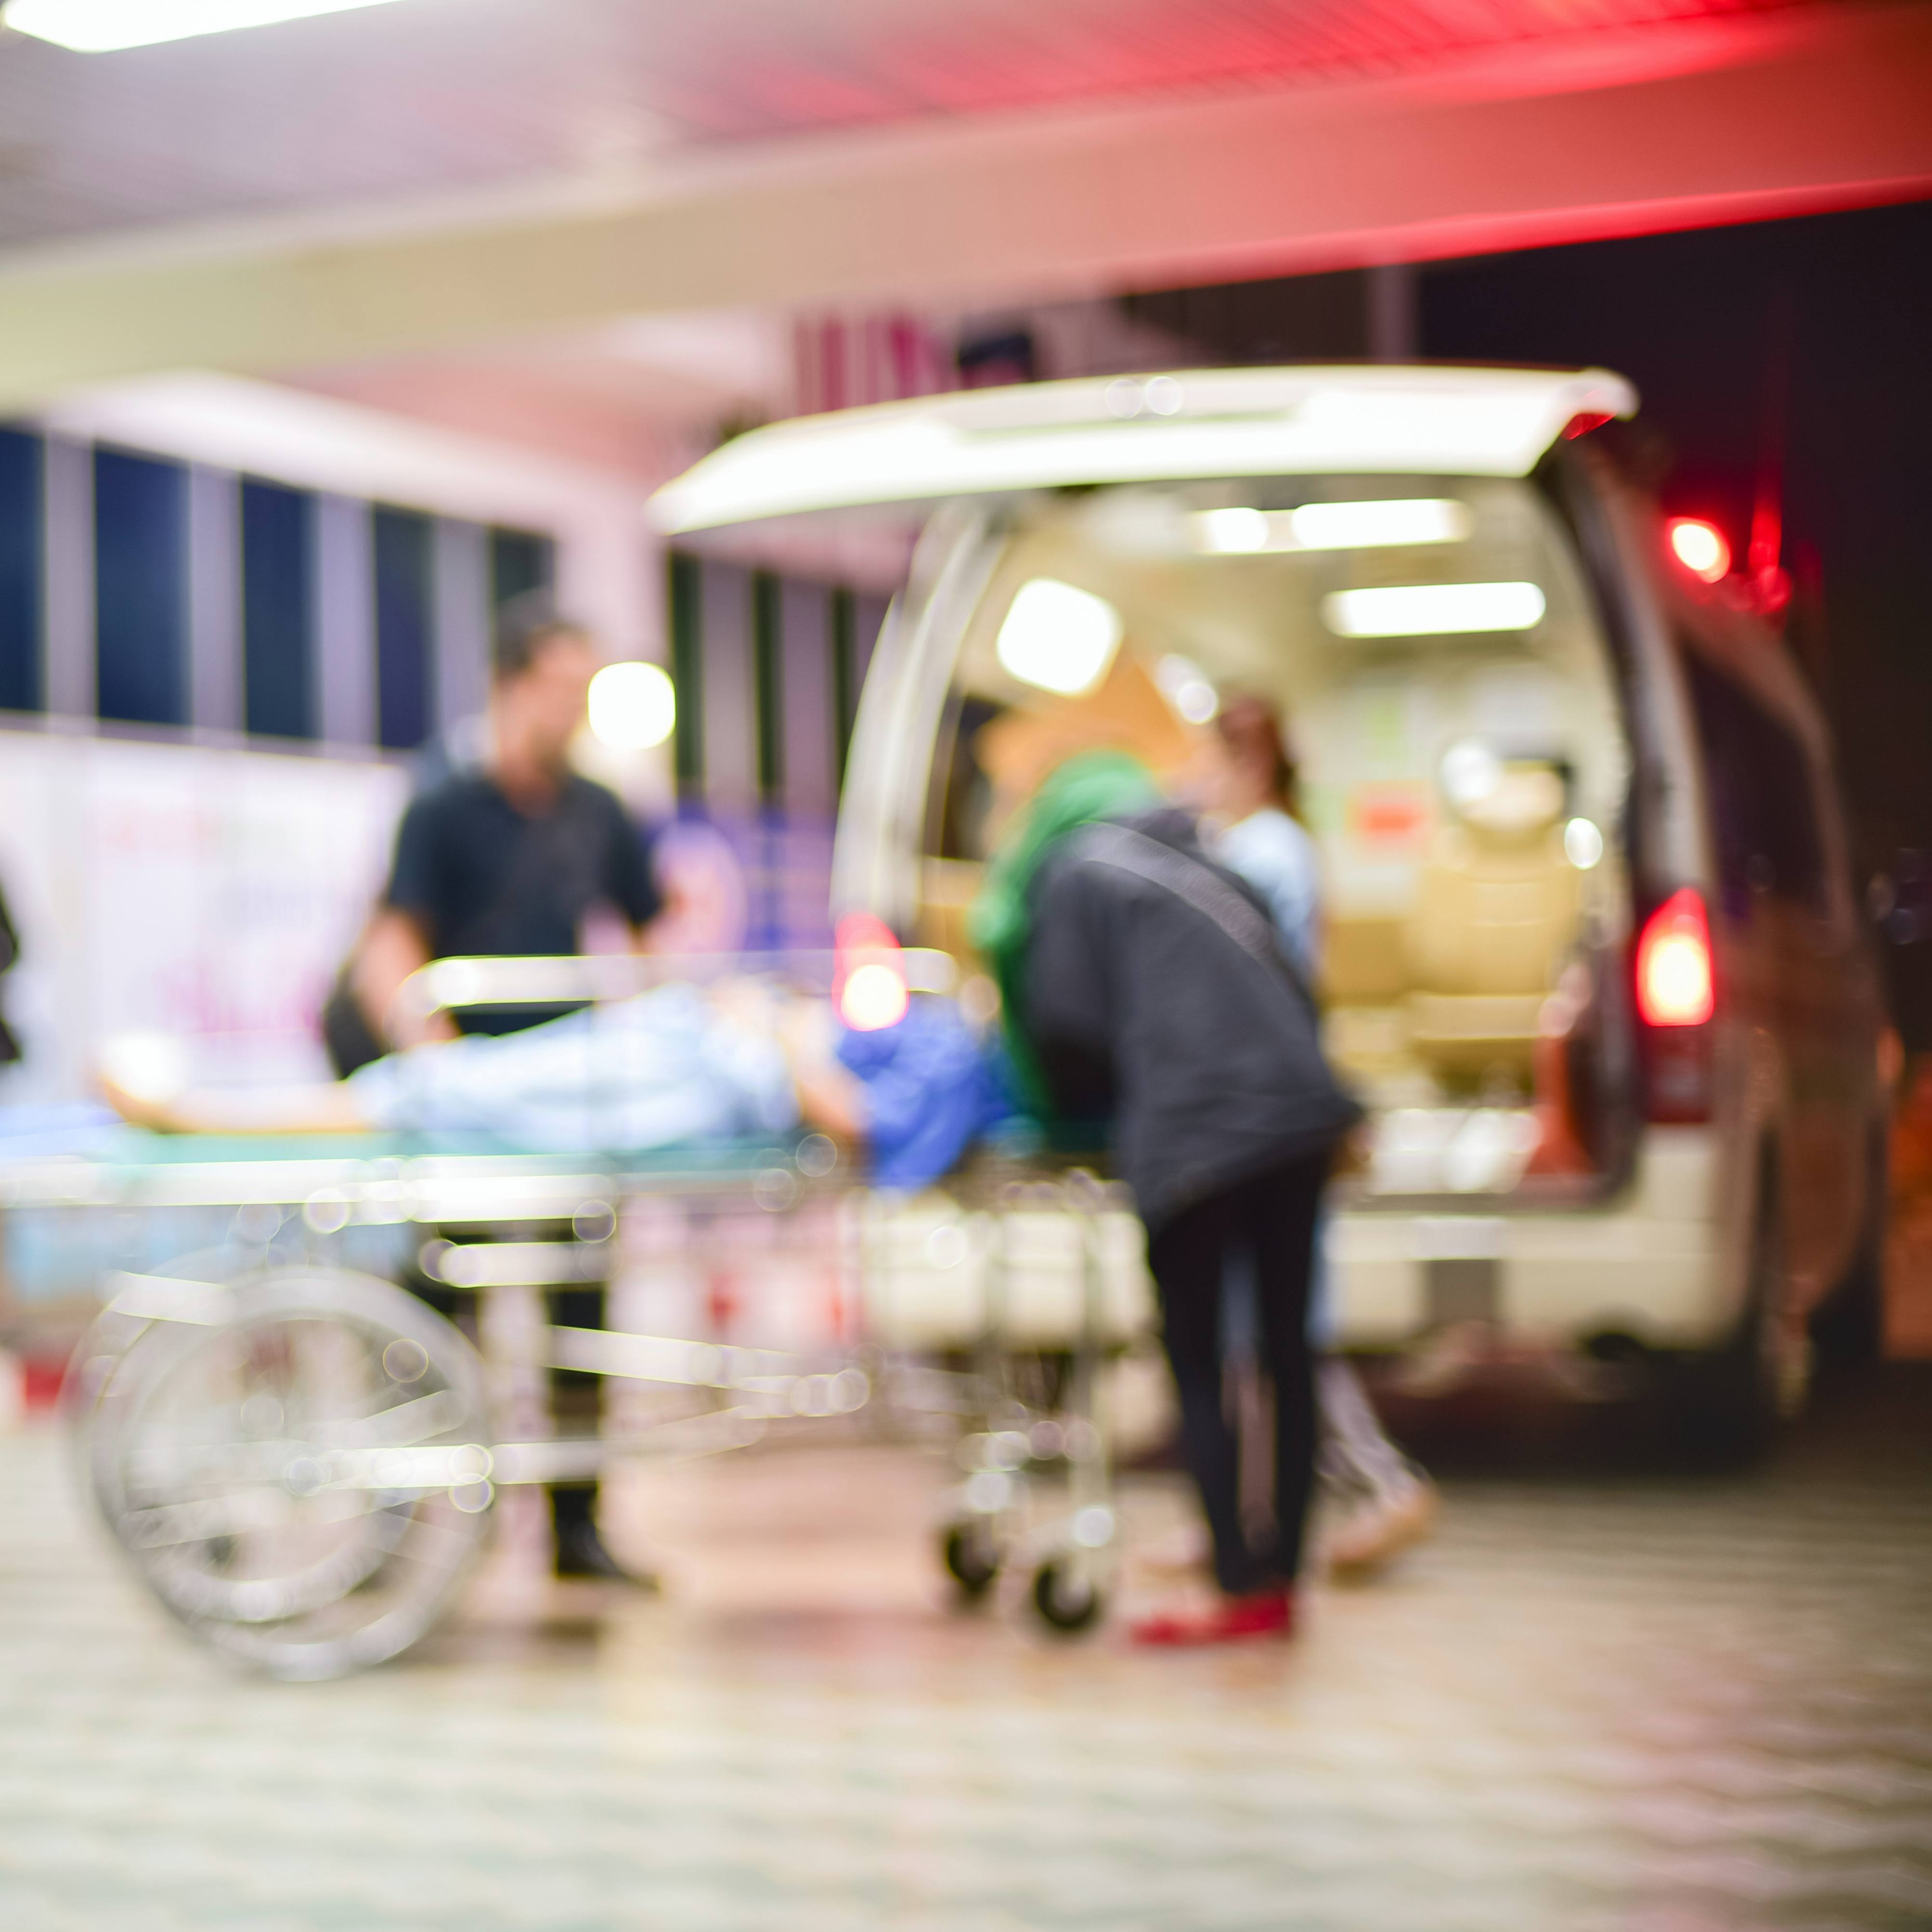 an out of focus blurred picture of an emergency ambulance crew